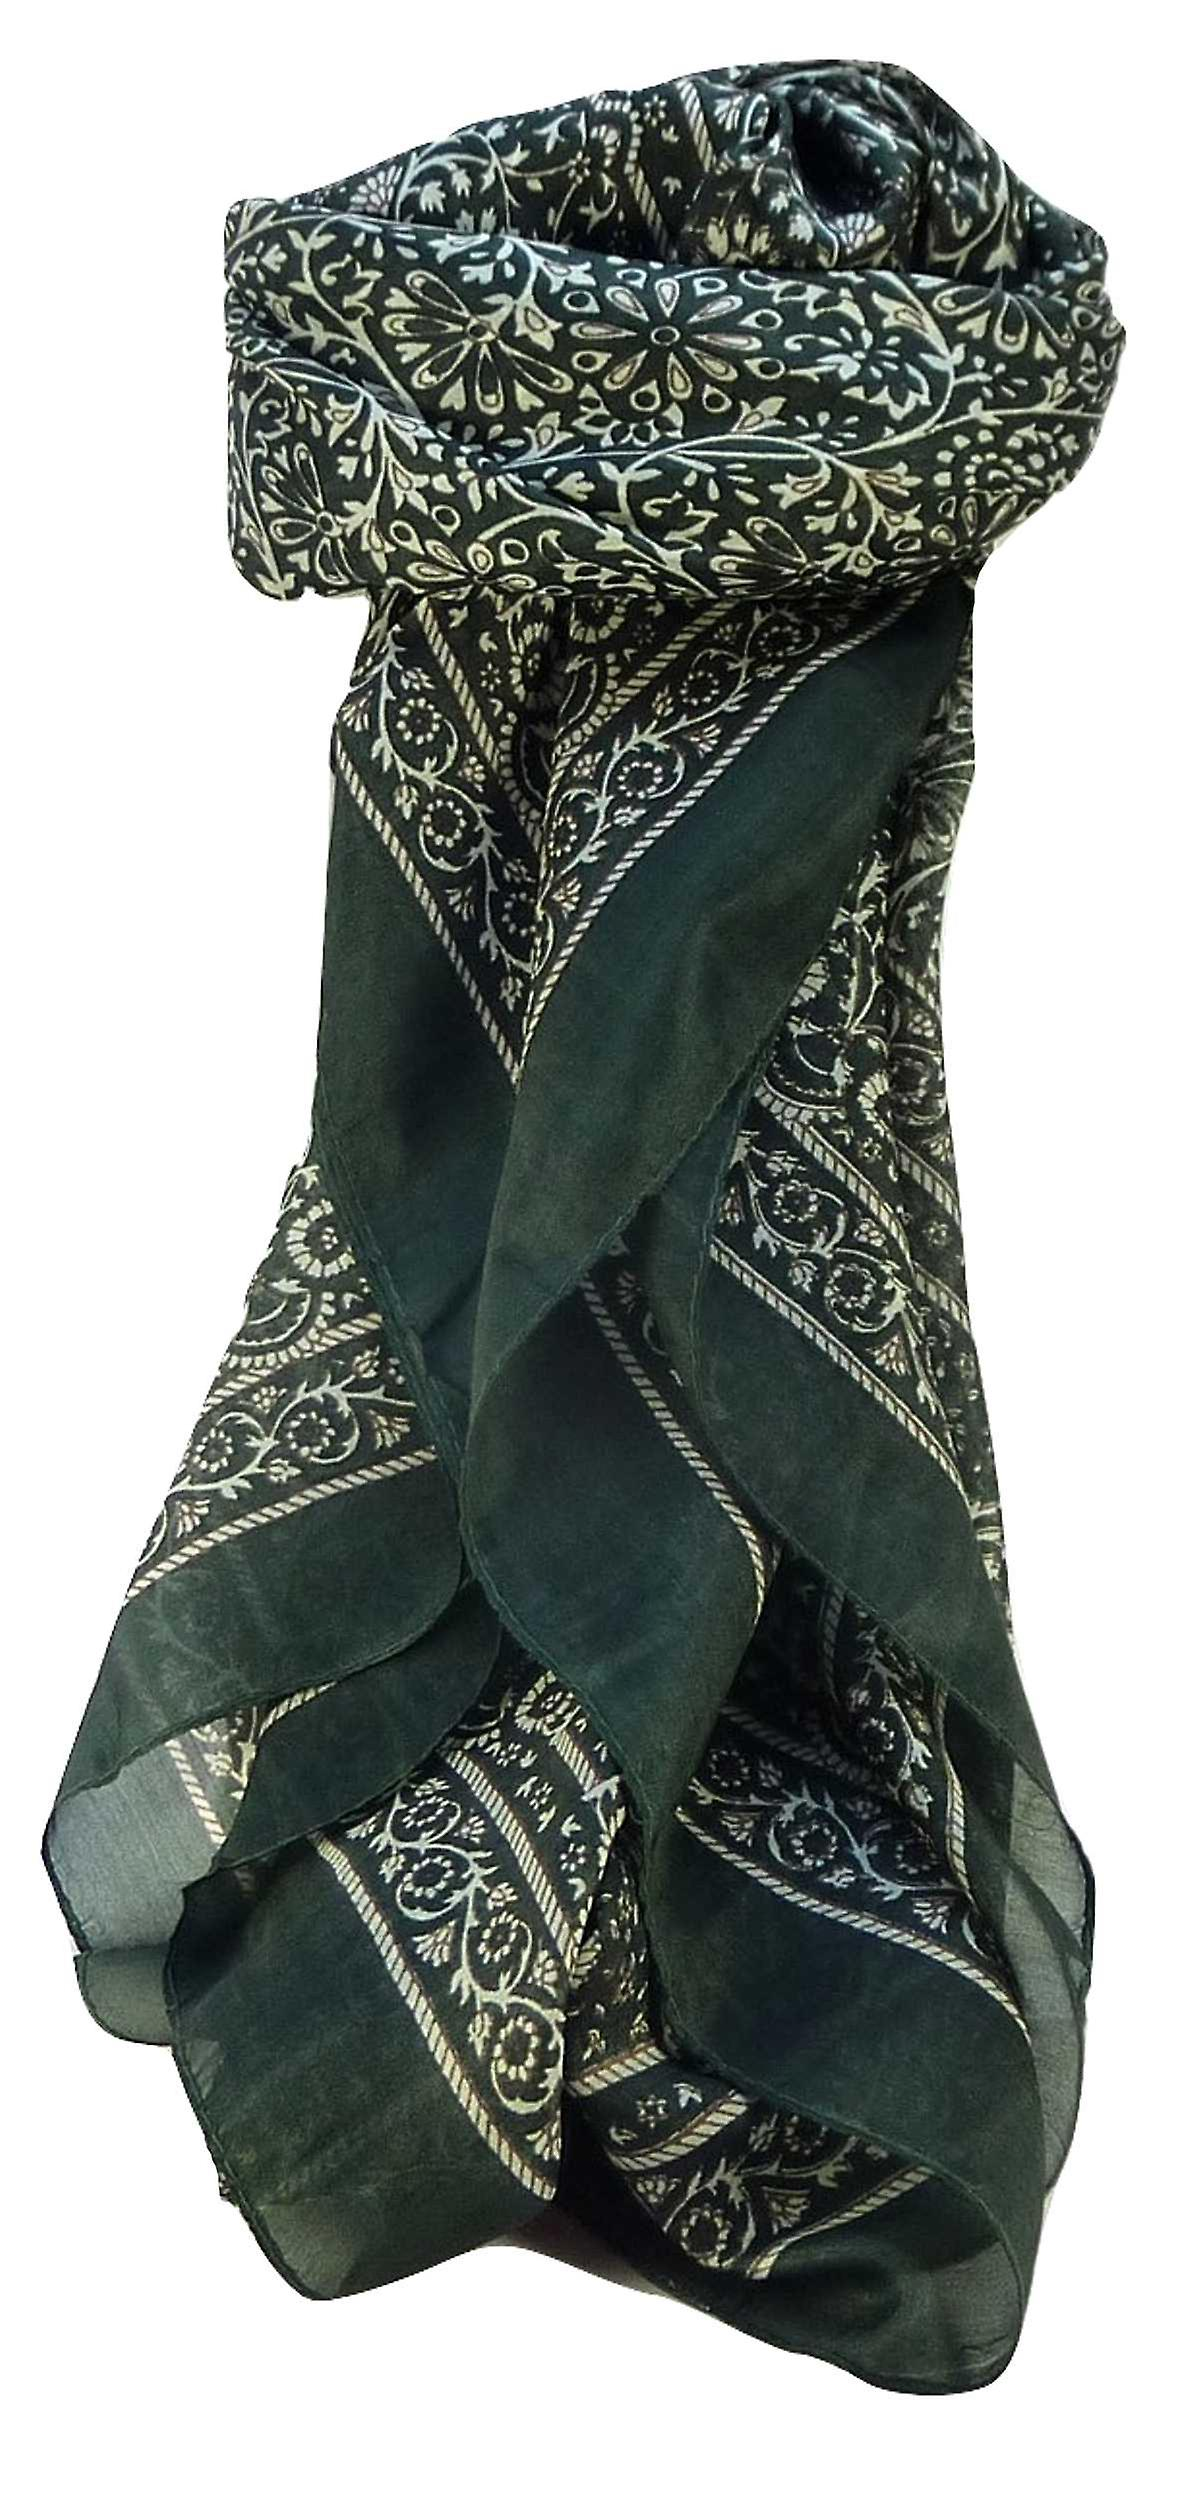 Mulberry Silk Contemporary Square Scarf Floral F214 by Pashmina & Silk